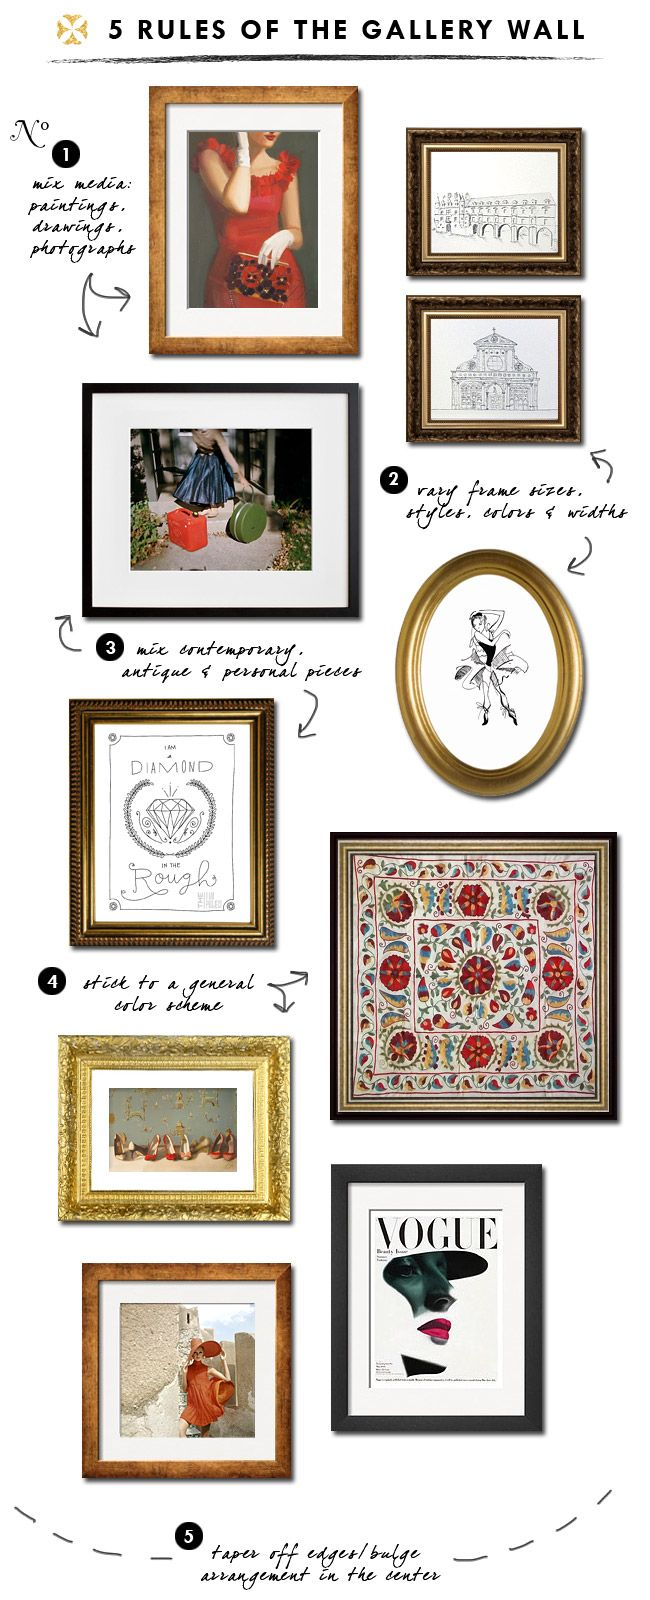 Small Shop's 5 rules of the gallery wall.  1. Mix media: paintings, drawings, photographs. 2. Vary frame sizes, styles, colors & widths. 3. Mix contemporary, antique & personal pieces. 4. Stick to a general color scheme. 5. Taper off edges/bulge arrangement in the center.